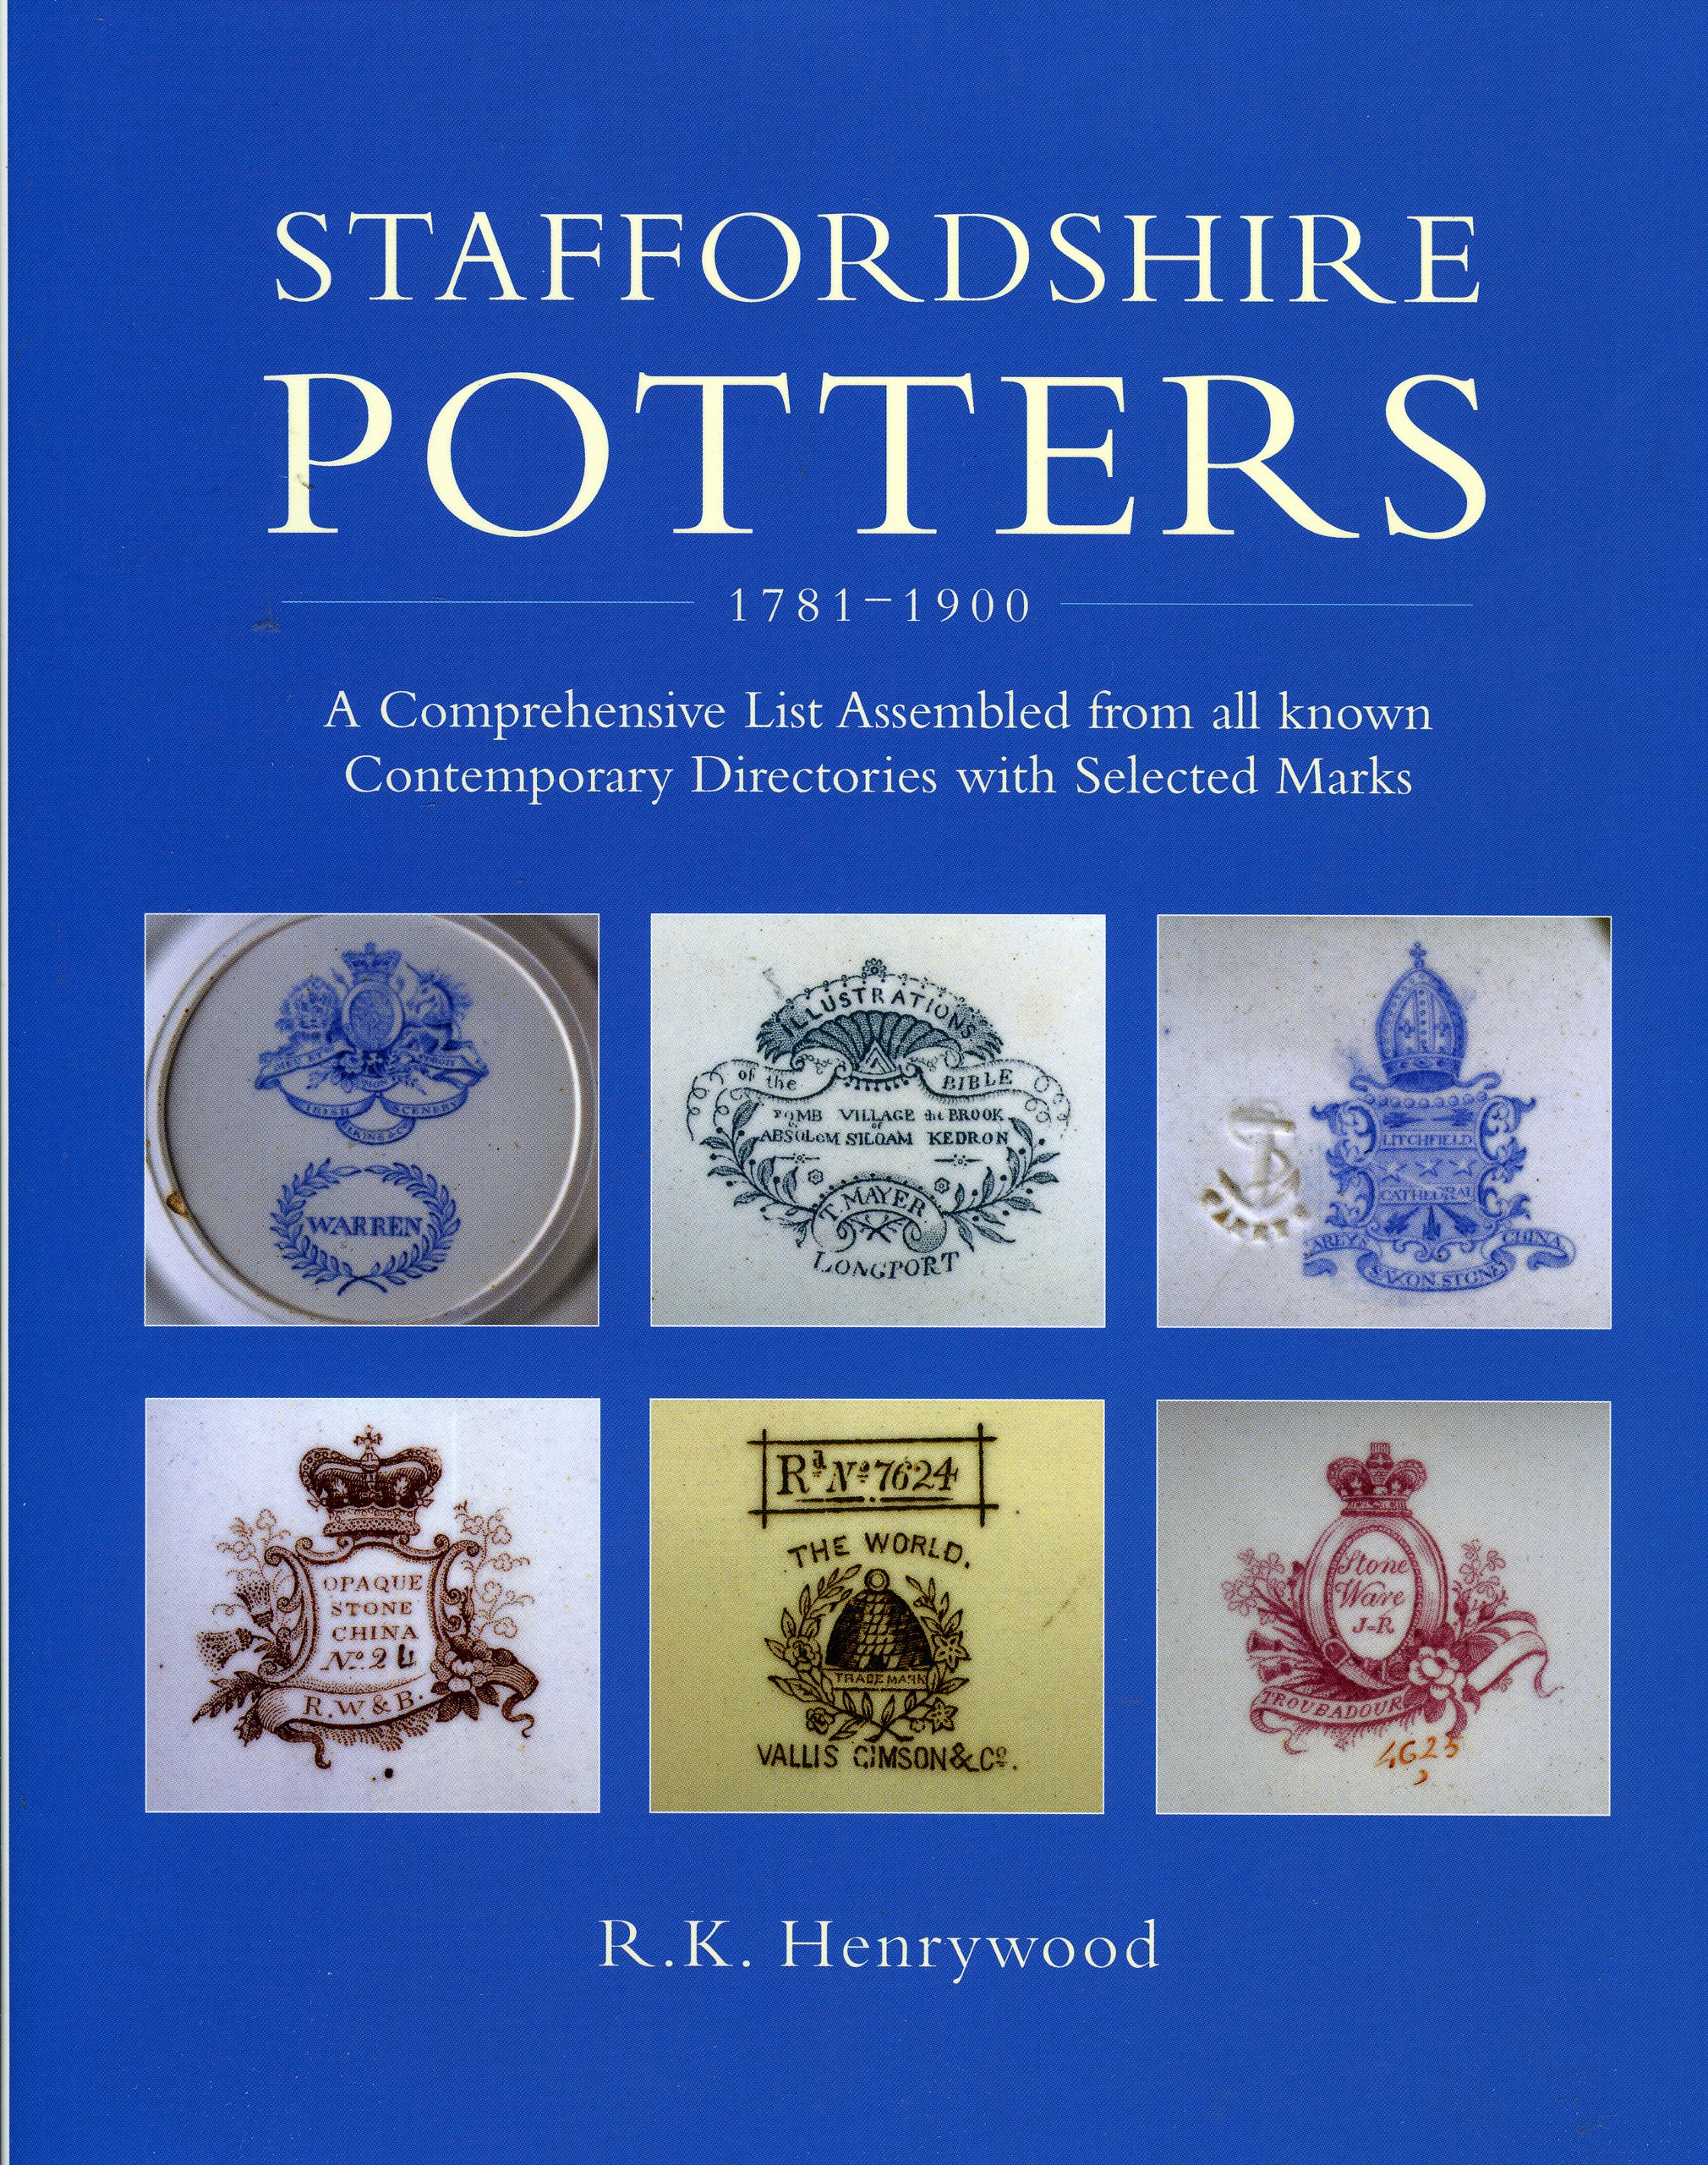 Staffordshire Potters, 1781-1900: A Comprehensive List Assembled from All Known Contemporary Directories with Selected Marks